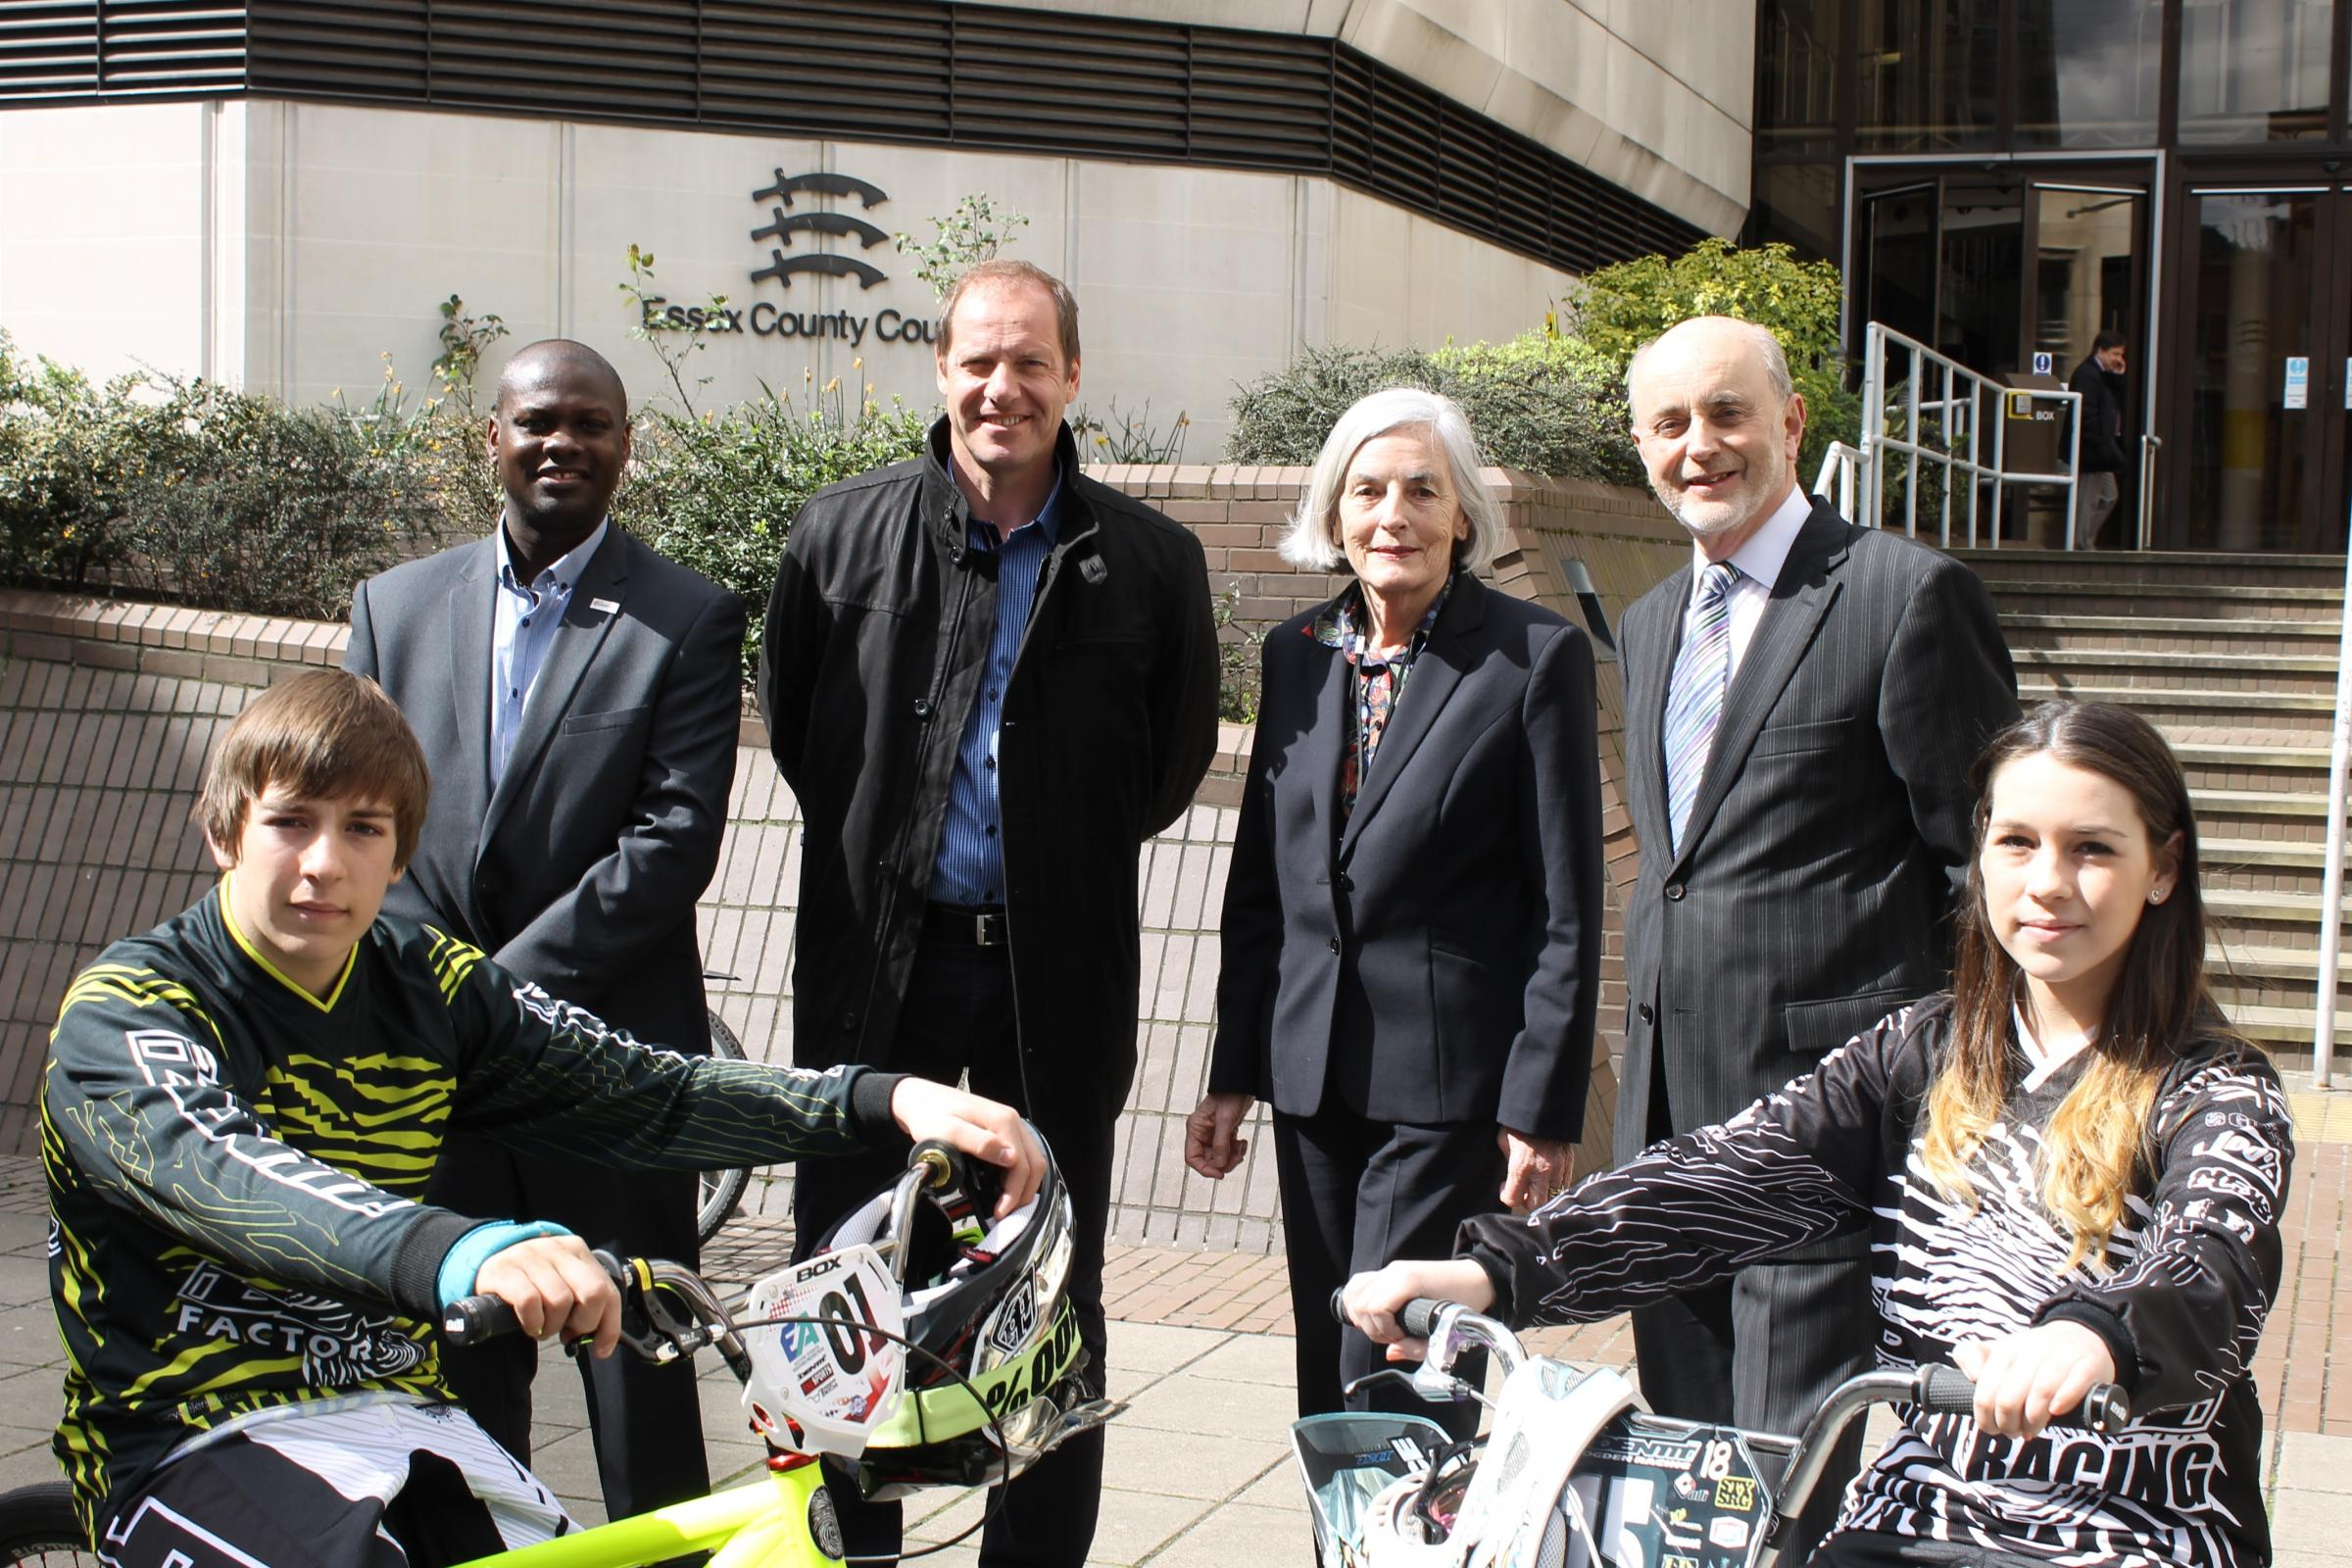 Back row L-R: Jason Fergus, Christian Prudhomme, Cllr Ann Naylor, Cllr Ray Gooding. Front row: Shane and Lana Redgewell